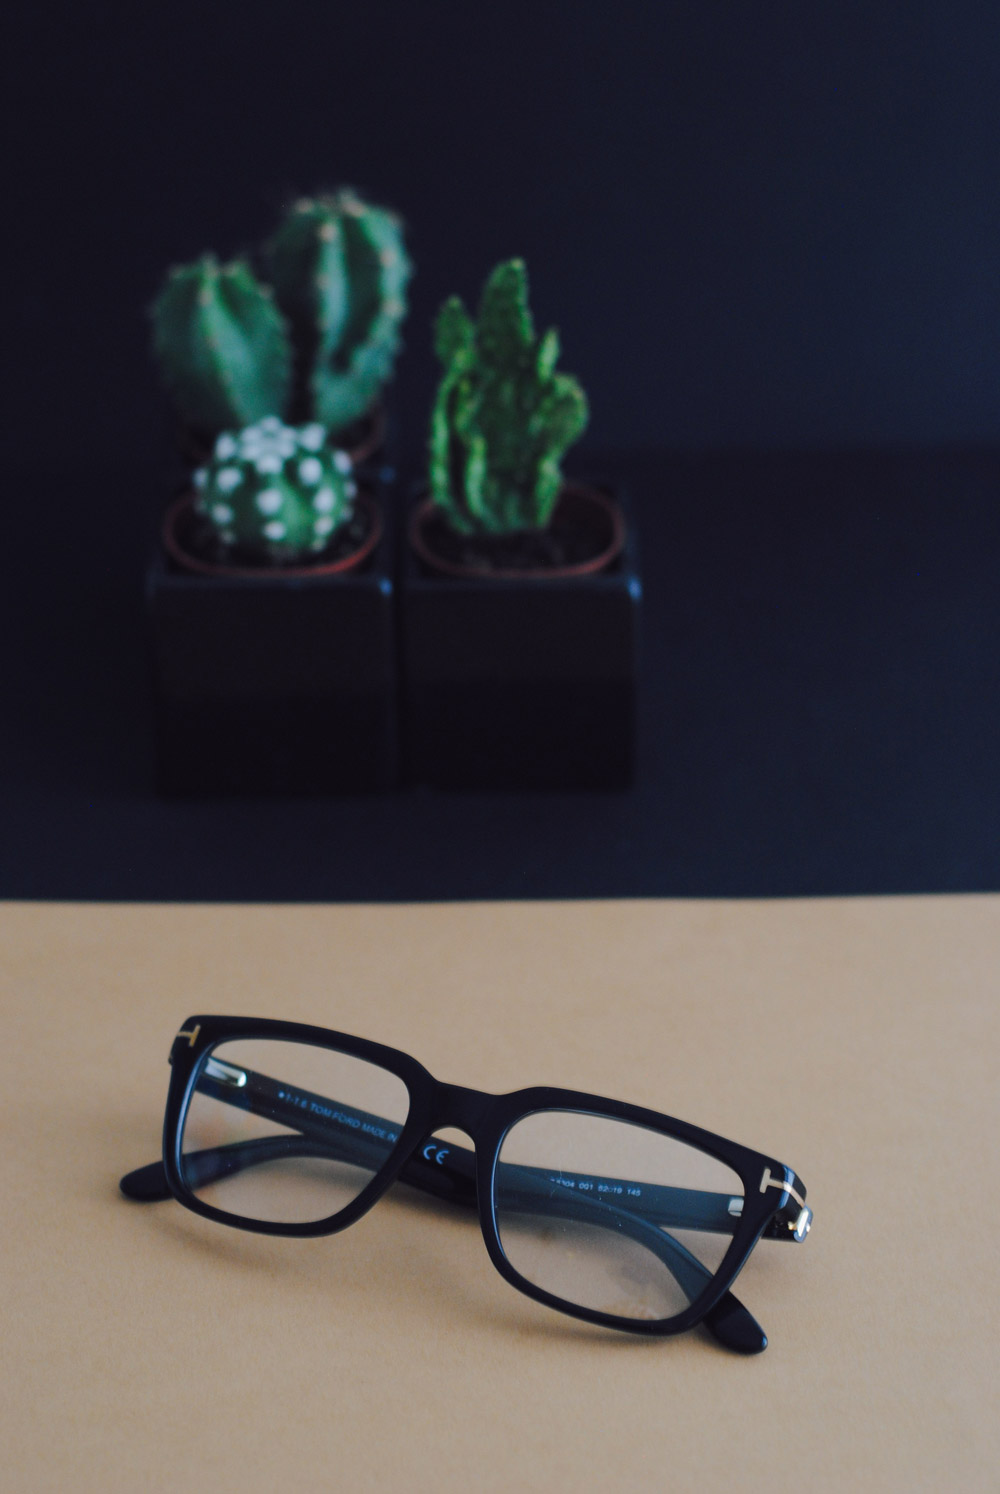 movember eyeglasses tom ford prescriptions